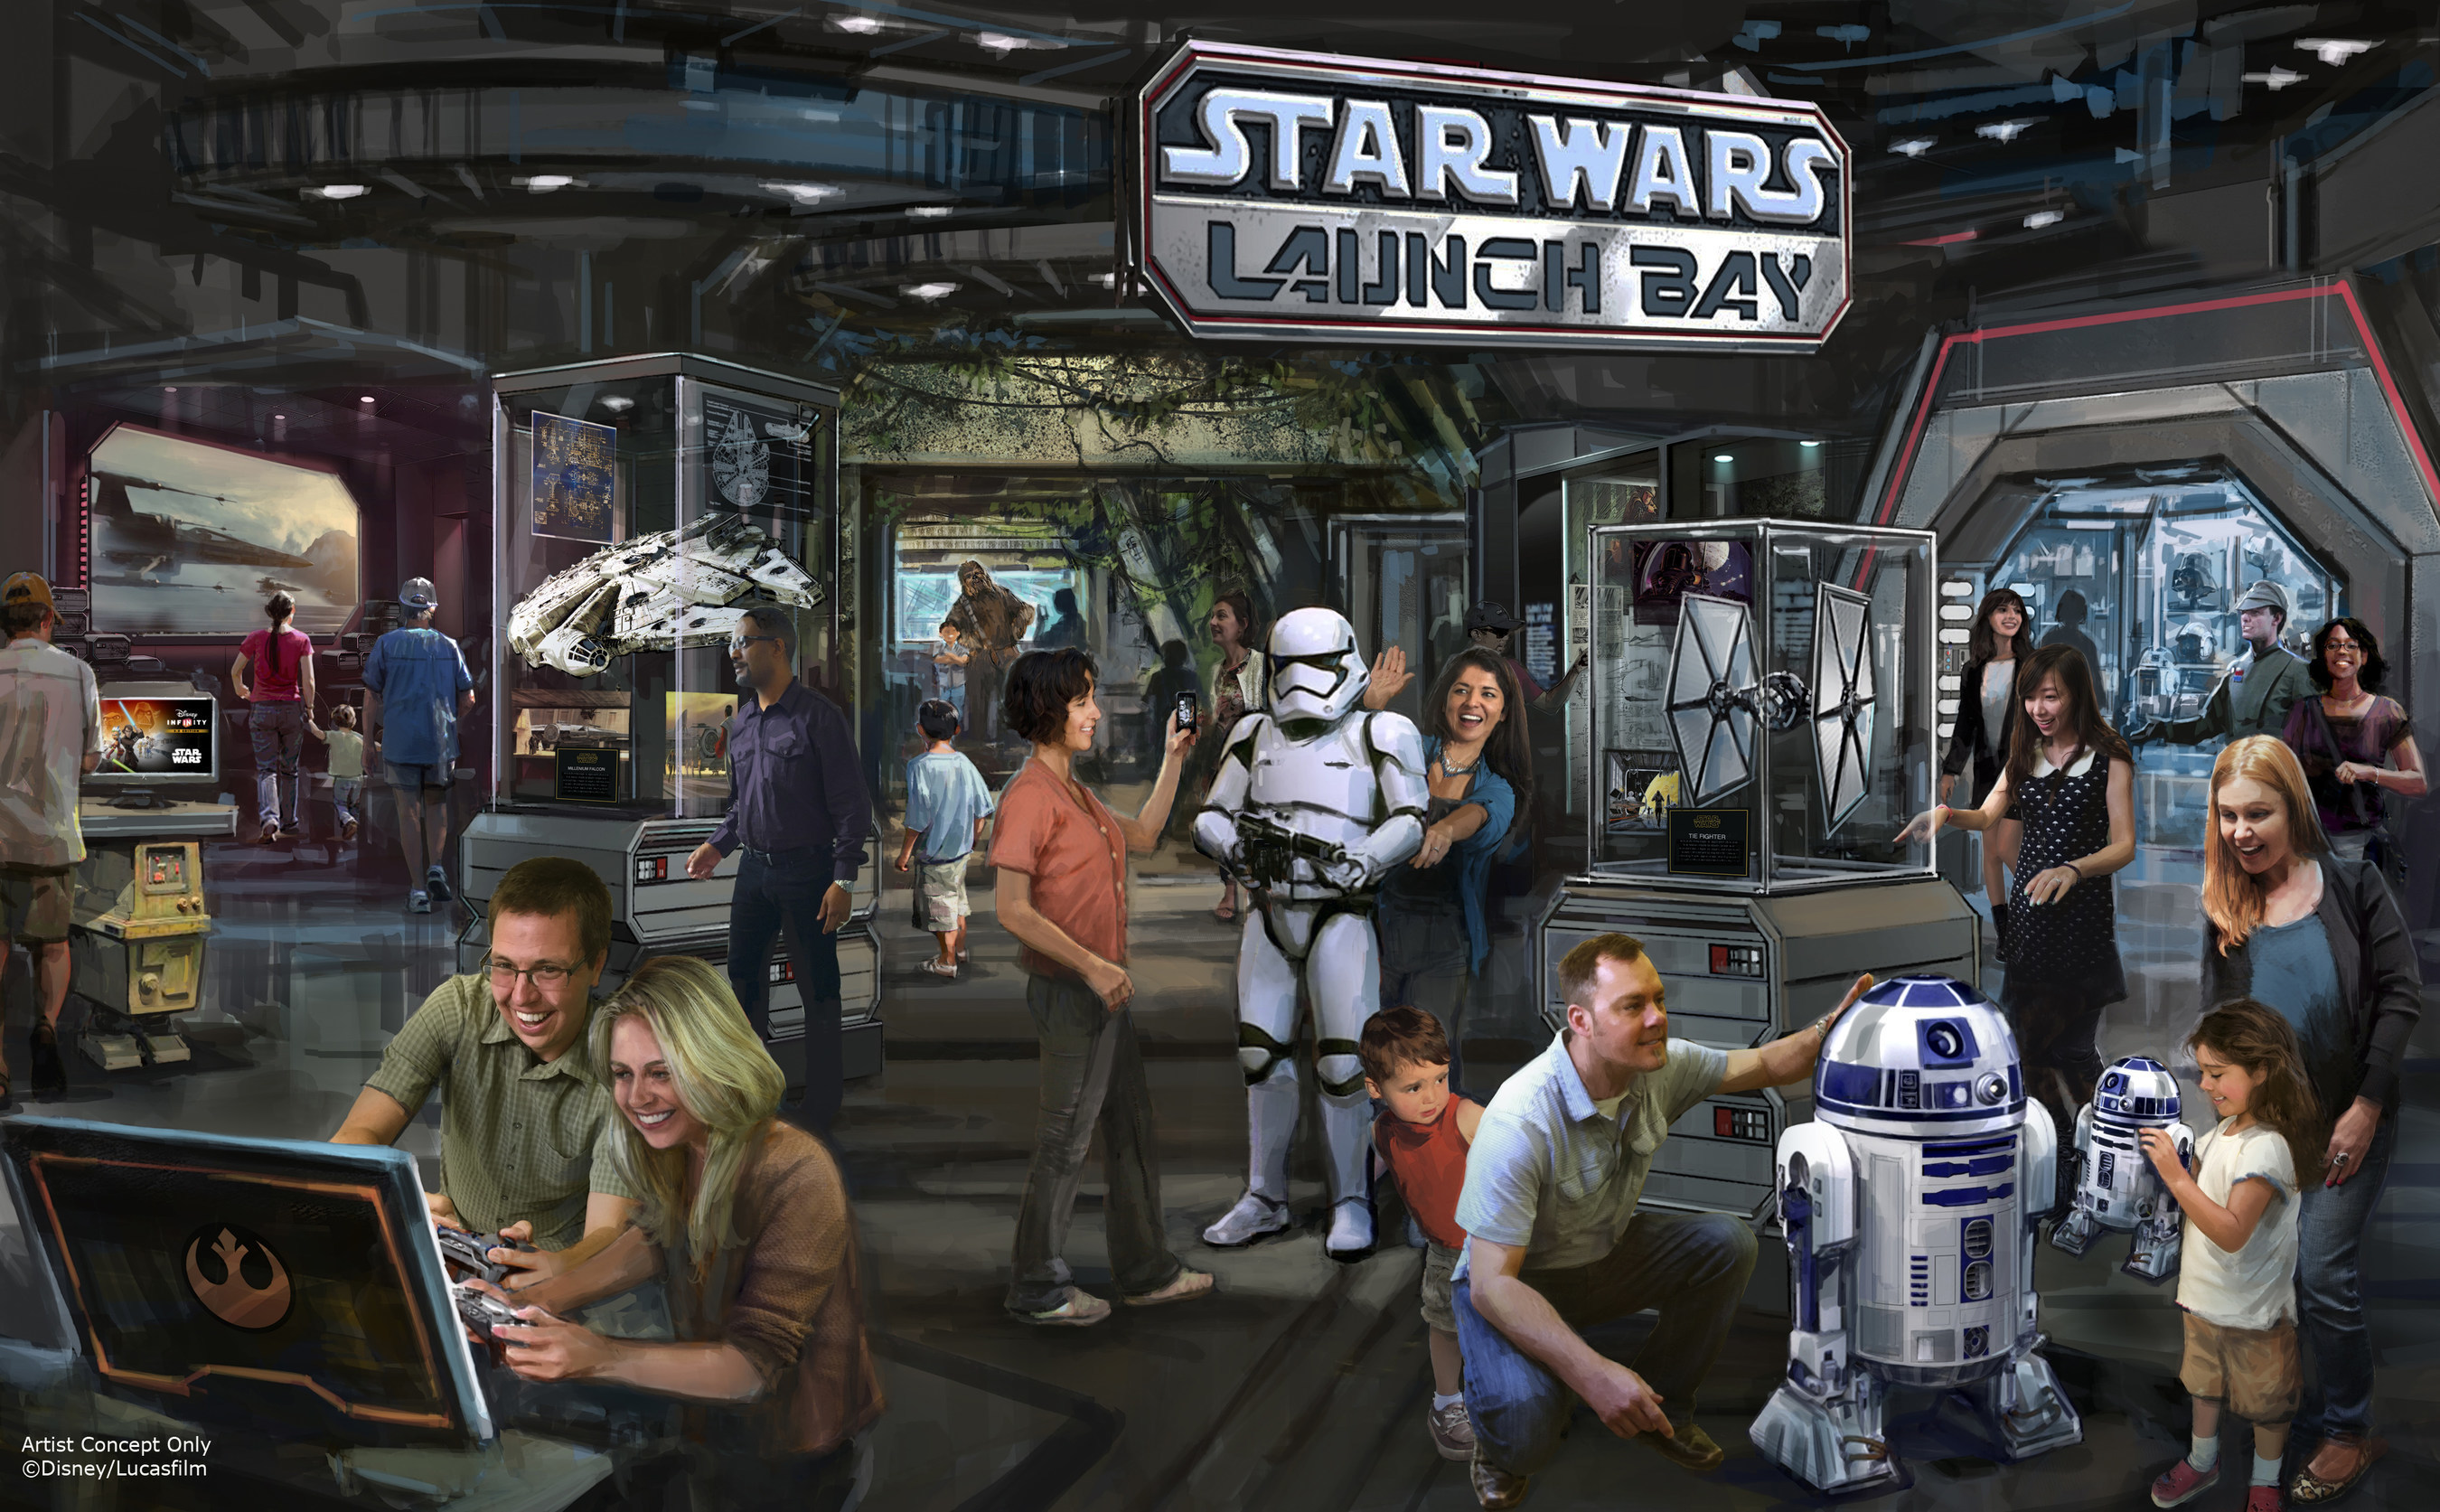 Star Wars Launch Bay Coming to Disneyland Resort and Walt Disney World Resort -- This interactive experience will take guests into the upcoming film, Star Wars: The Force Awakens, with special exhibits and peeks behind the scenes, including opportunities to visit with new and favorite Star Wars characters, special merchandise and food offerings.  Star Wars Launch Bay will be located in the Animation Courtyard at Disney's Hollywood Studios and in Tomorrowland at Disneyland park. (Disney Parks) (PRNewsFoto/The Walt Disney Company)